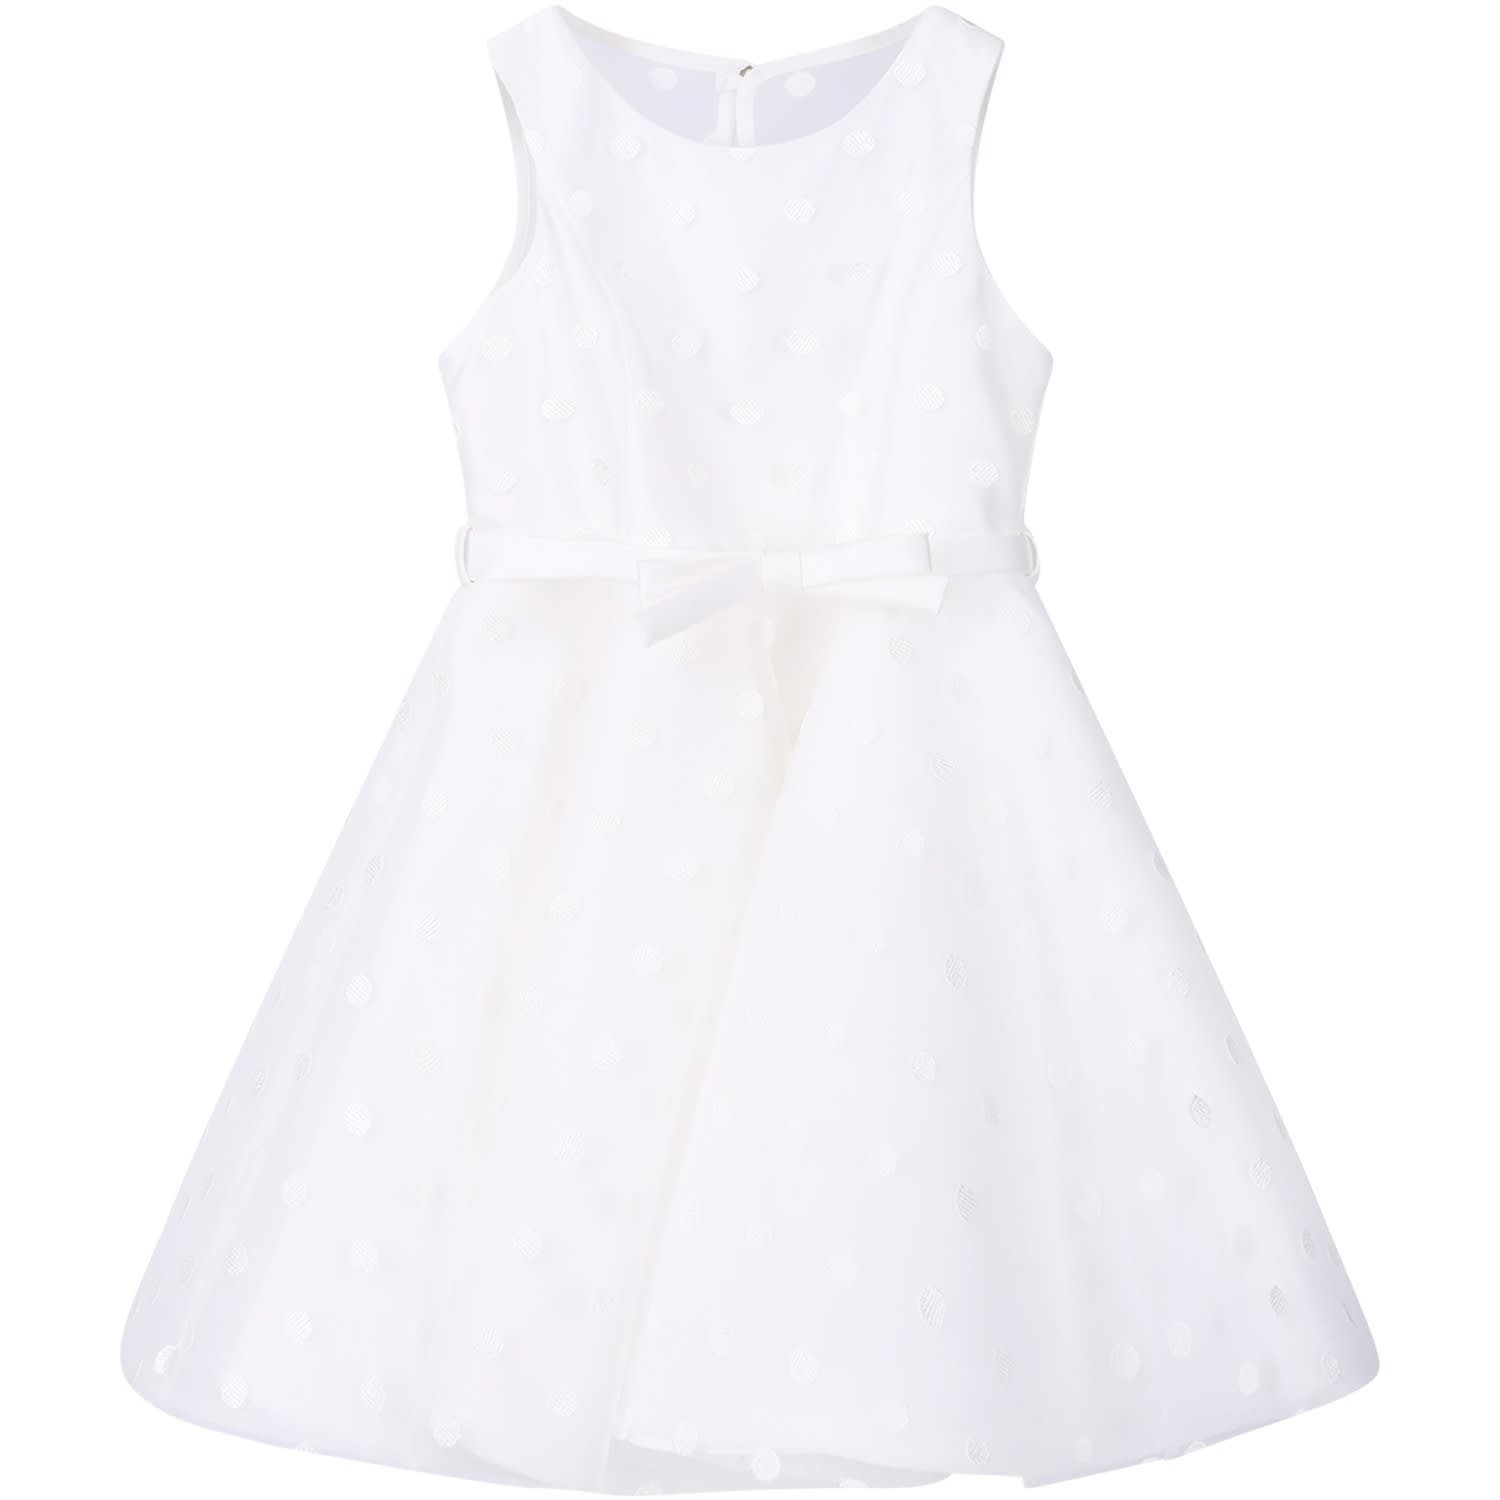 Loredana White Girl Dress With White Embroiderd Polka-dots